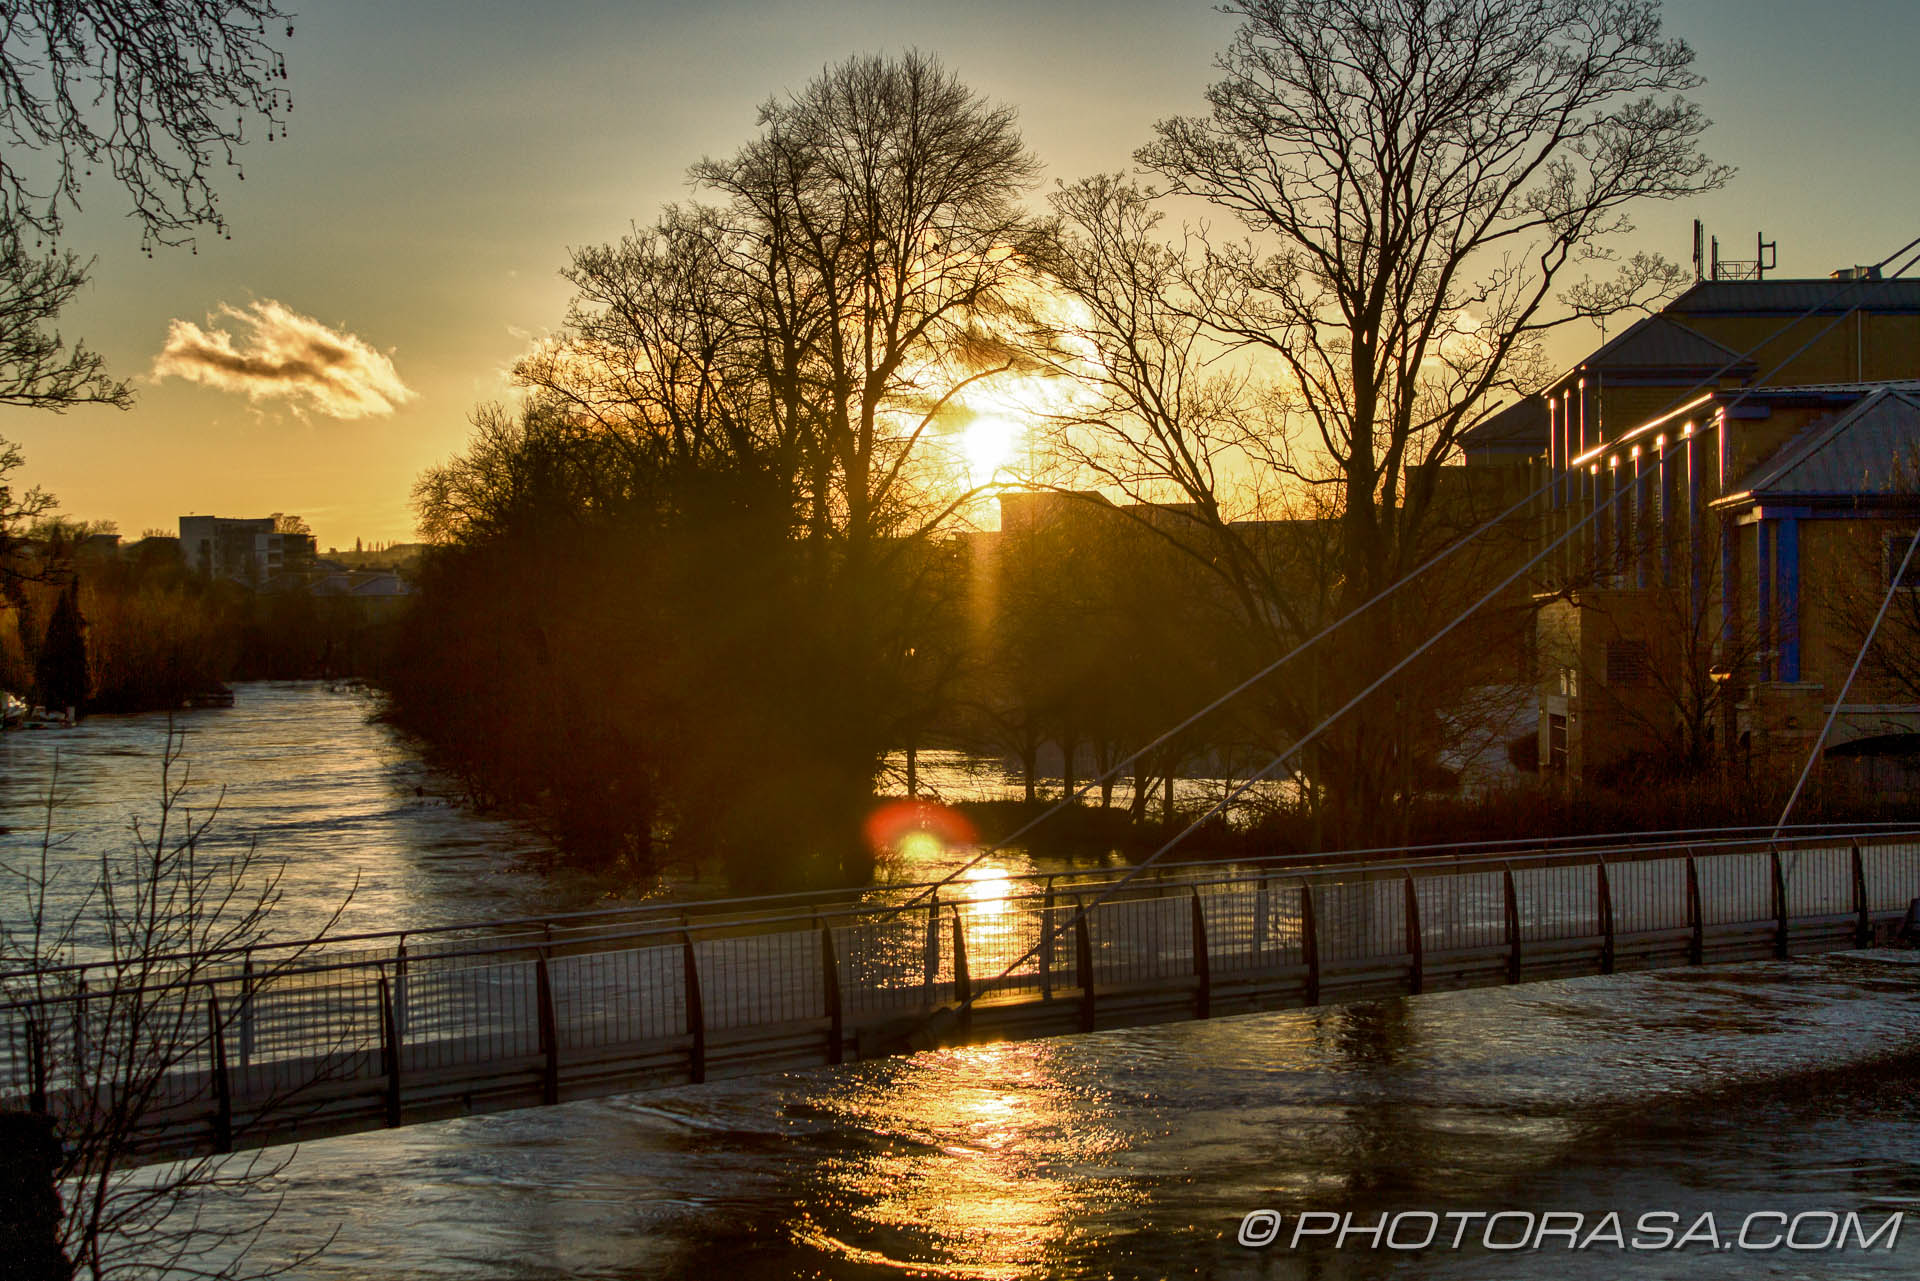 http://photorasa.com/wet-xmas-maidstone-river-medway-floods-town-centre/sunset-over-flooded-medway-and-lockmeadow-footbridge/